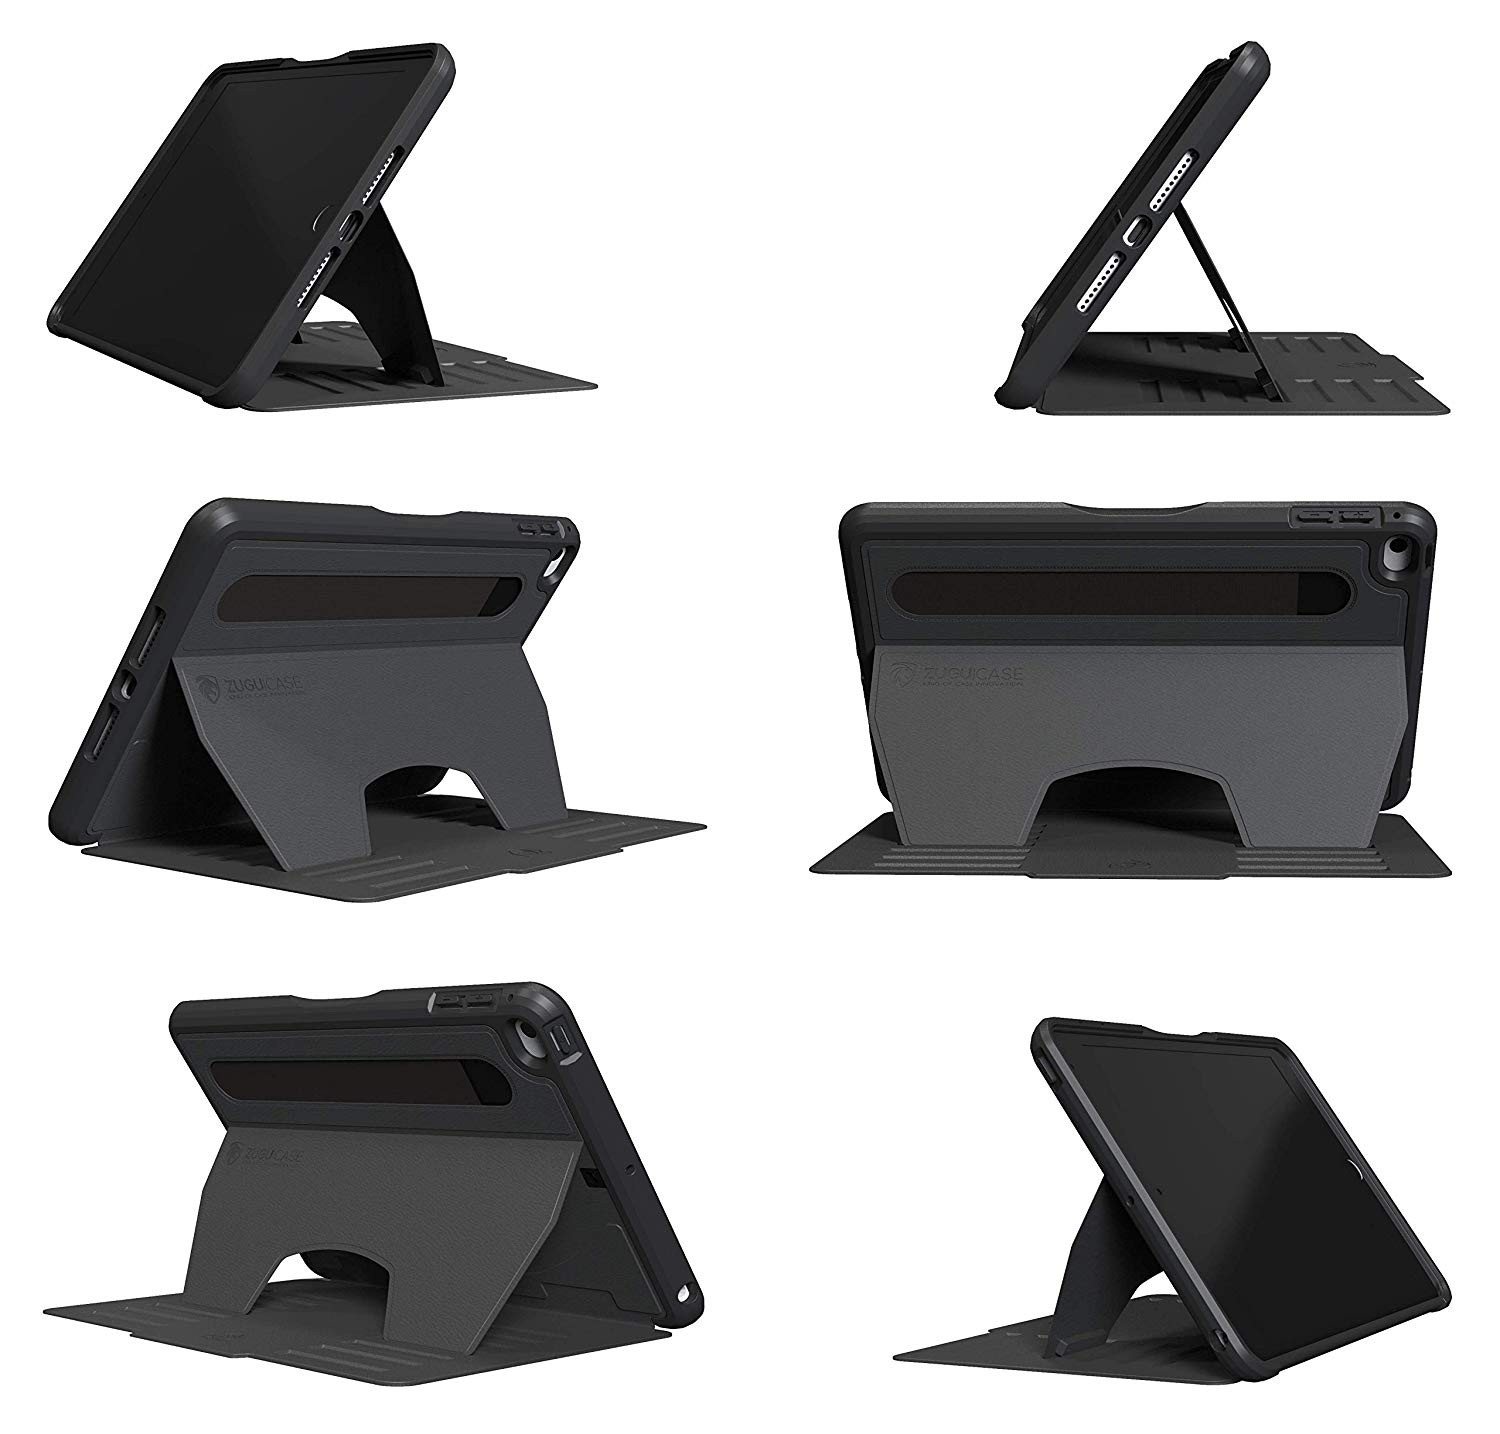 ZUGU CASE - iPad Mini 5 & 4 Muse Case - 5 Ft Drop Protection, Secure 7 Angle Magnetic Stand - Black, ZG-M-MIN5BLK